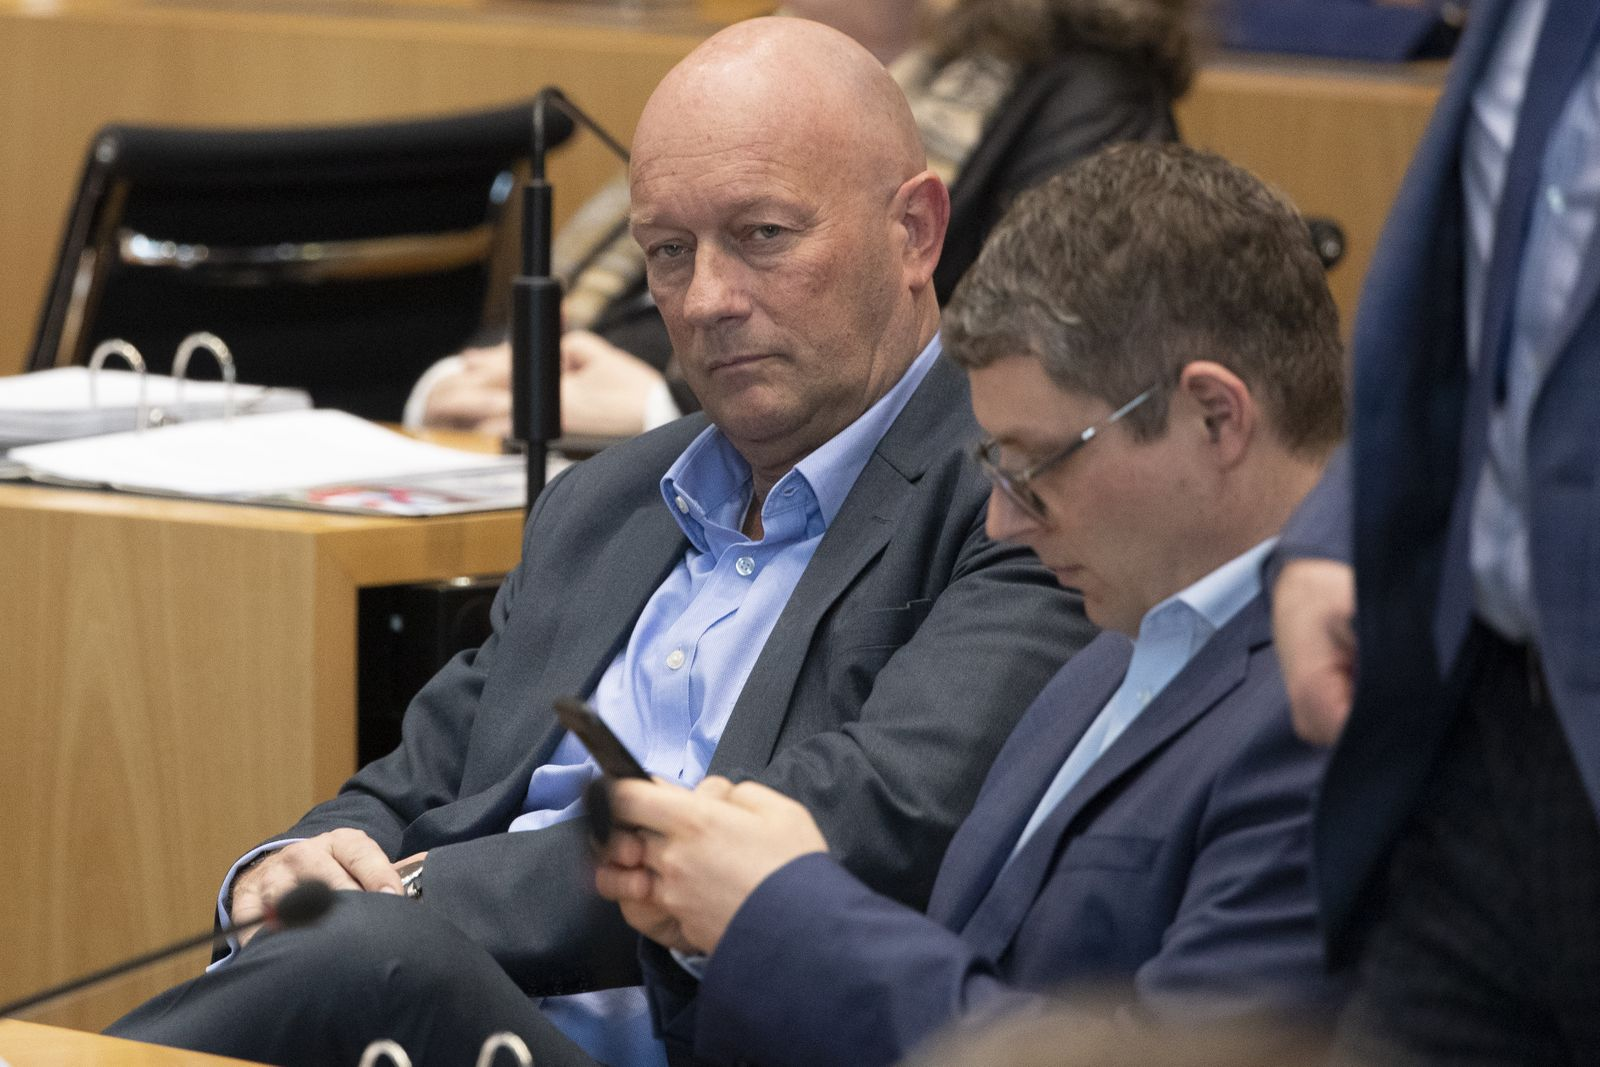 Thuringia Parliament Holds Gubernatorial Election, Again